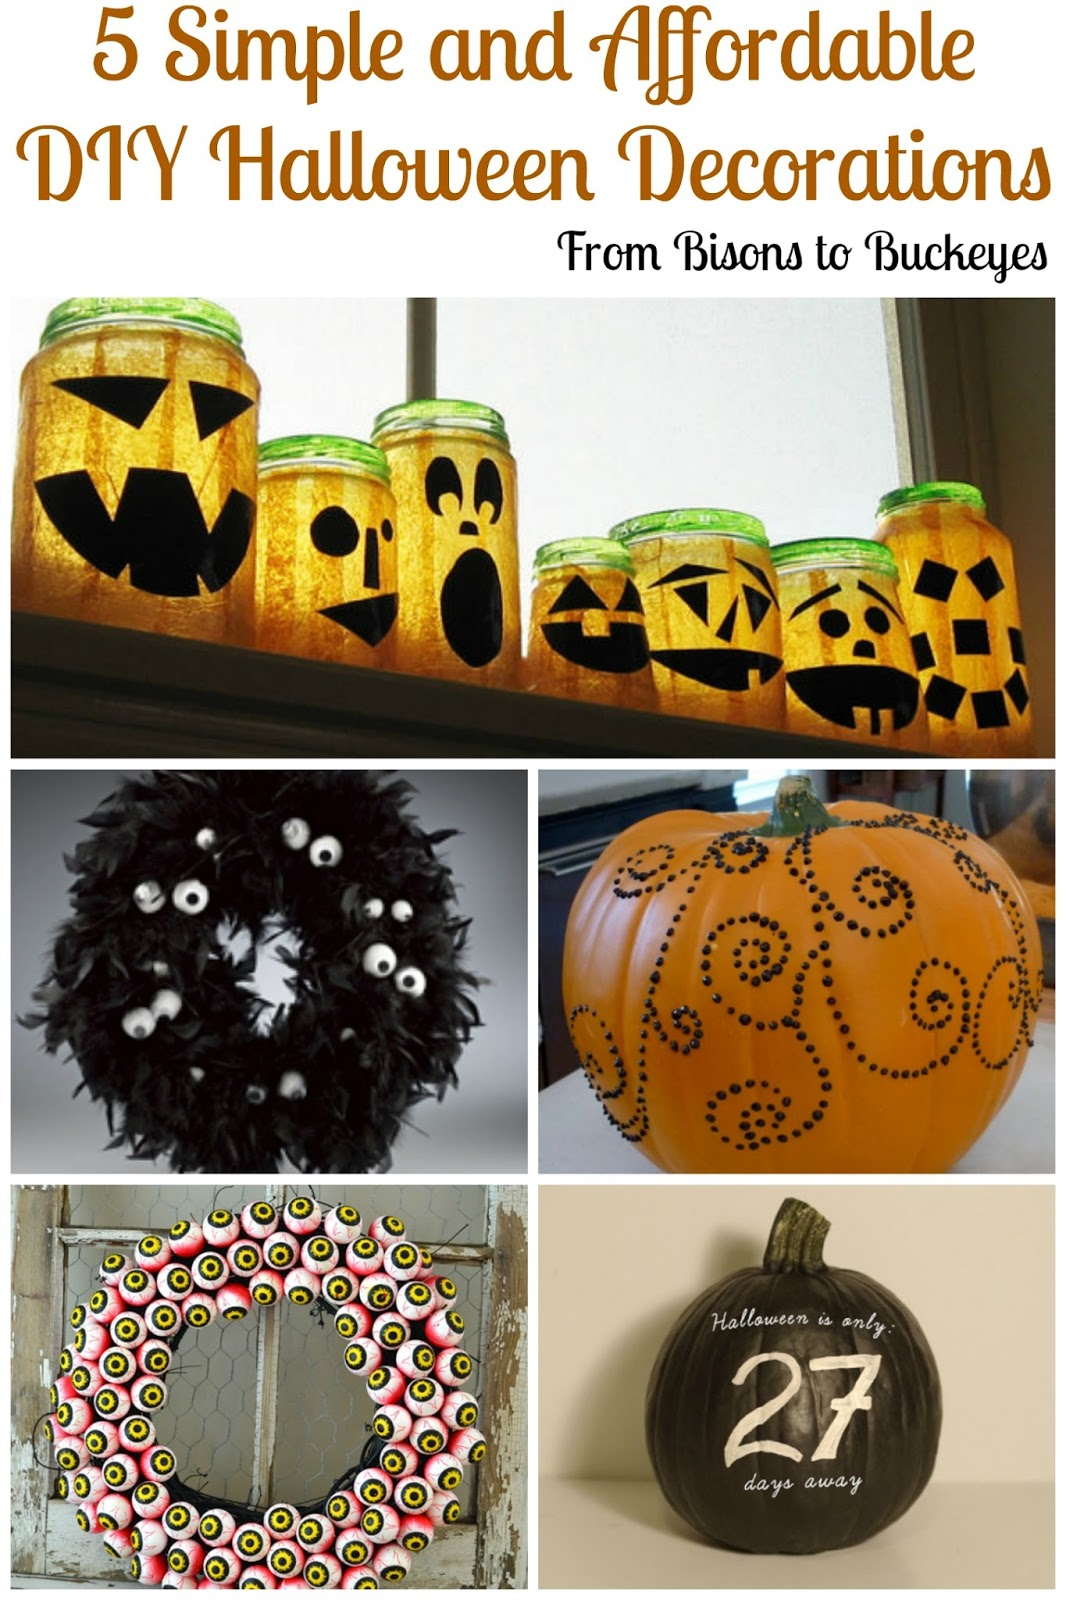 DIY Halloween Decor RoundUp